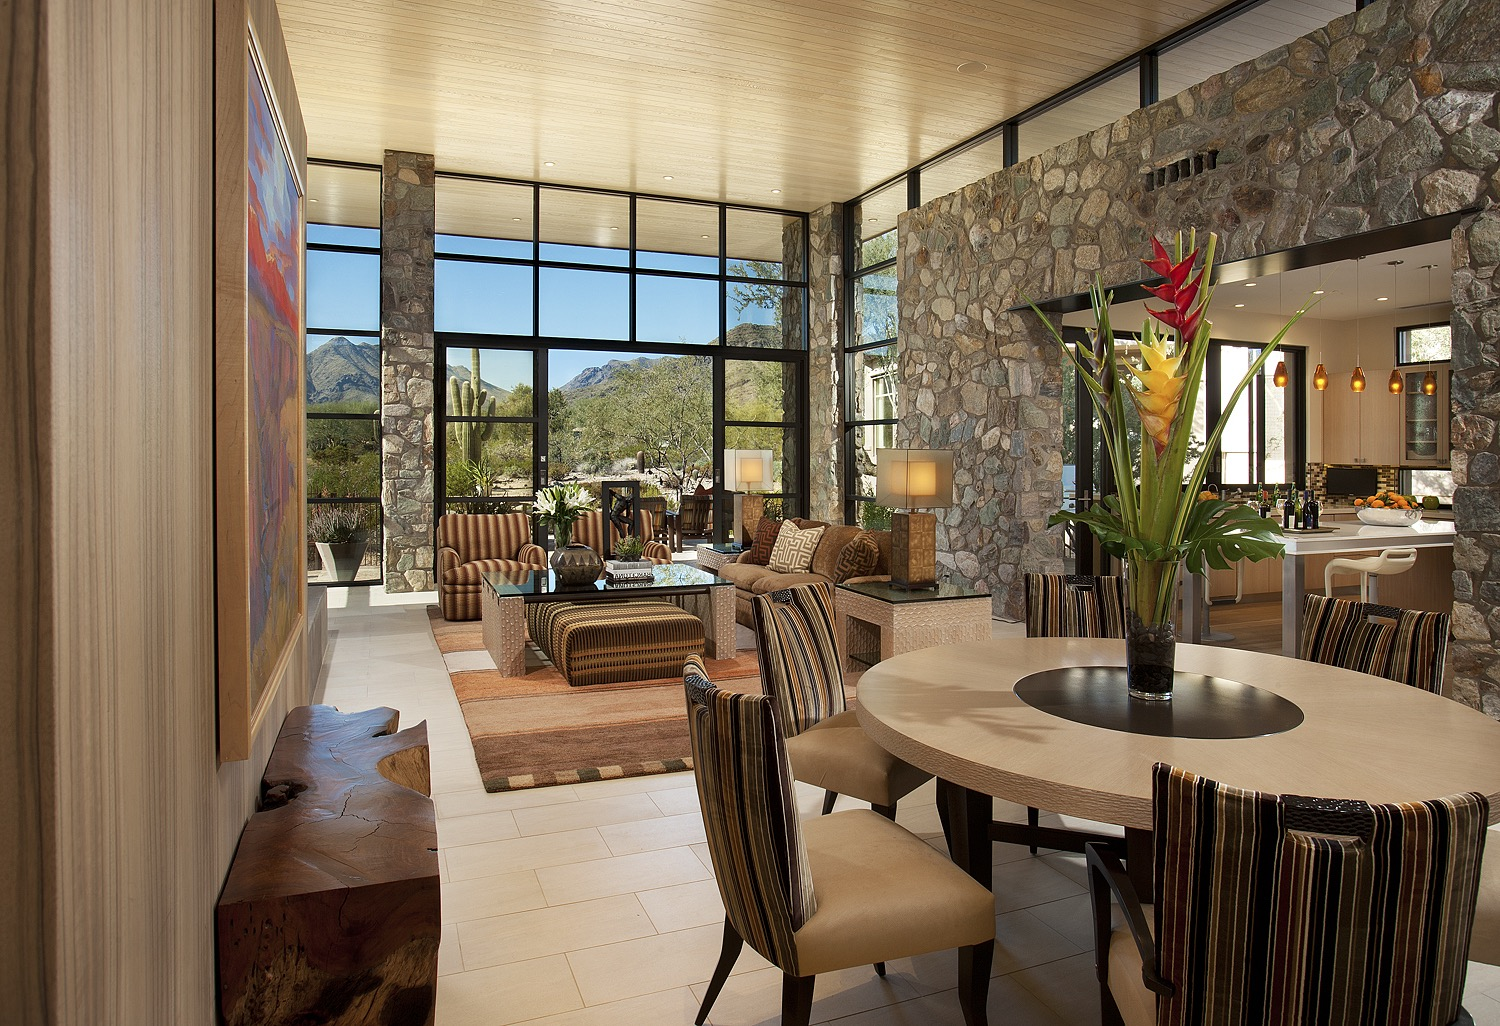 Sunny Southwestern Living Room And Dining Room Combo With Stone Accents (View 2 of 18)